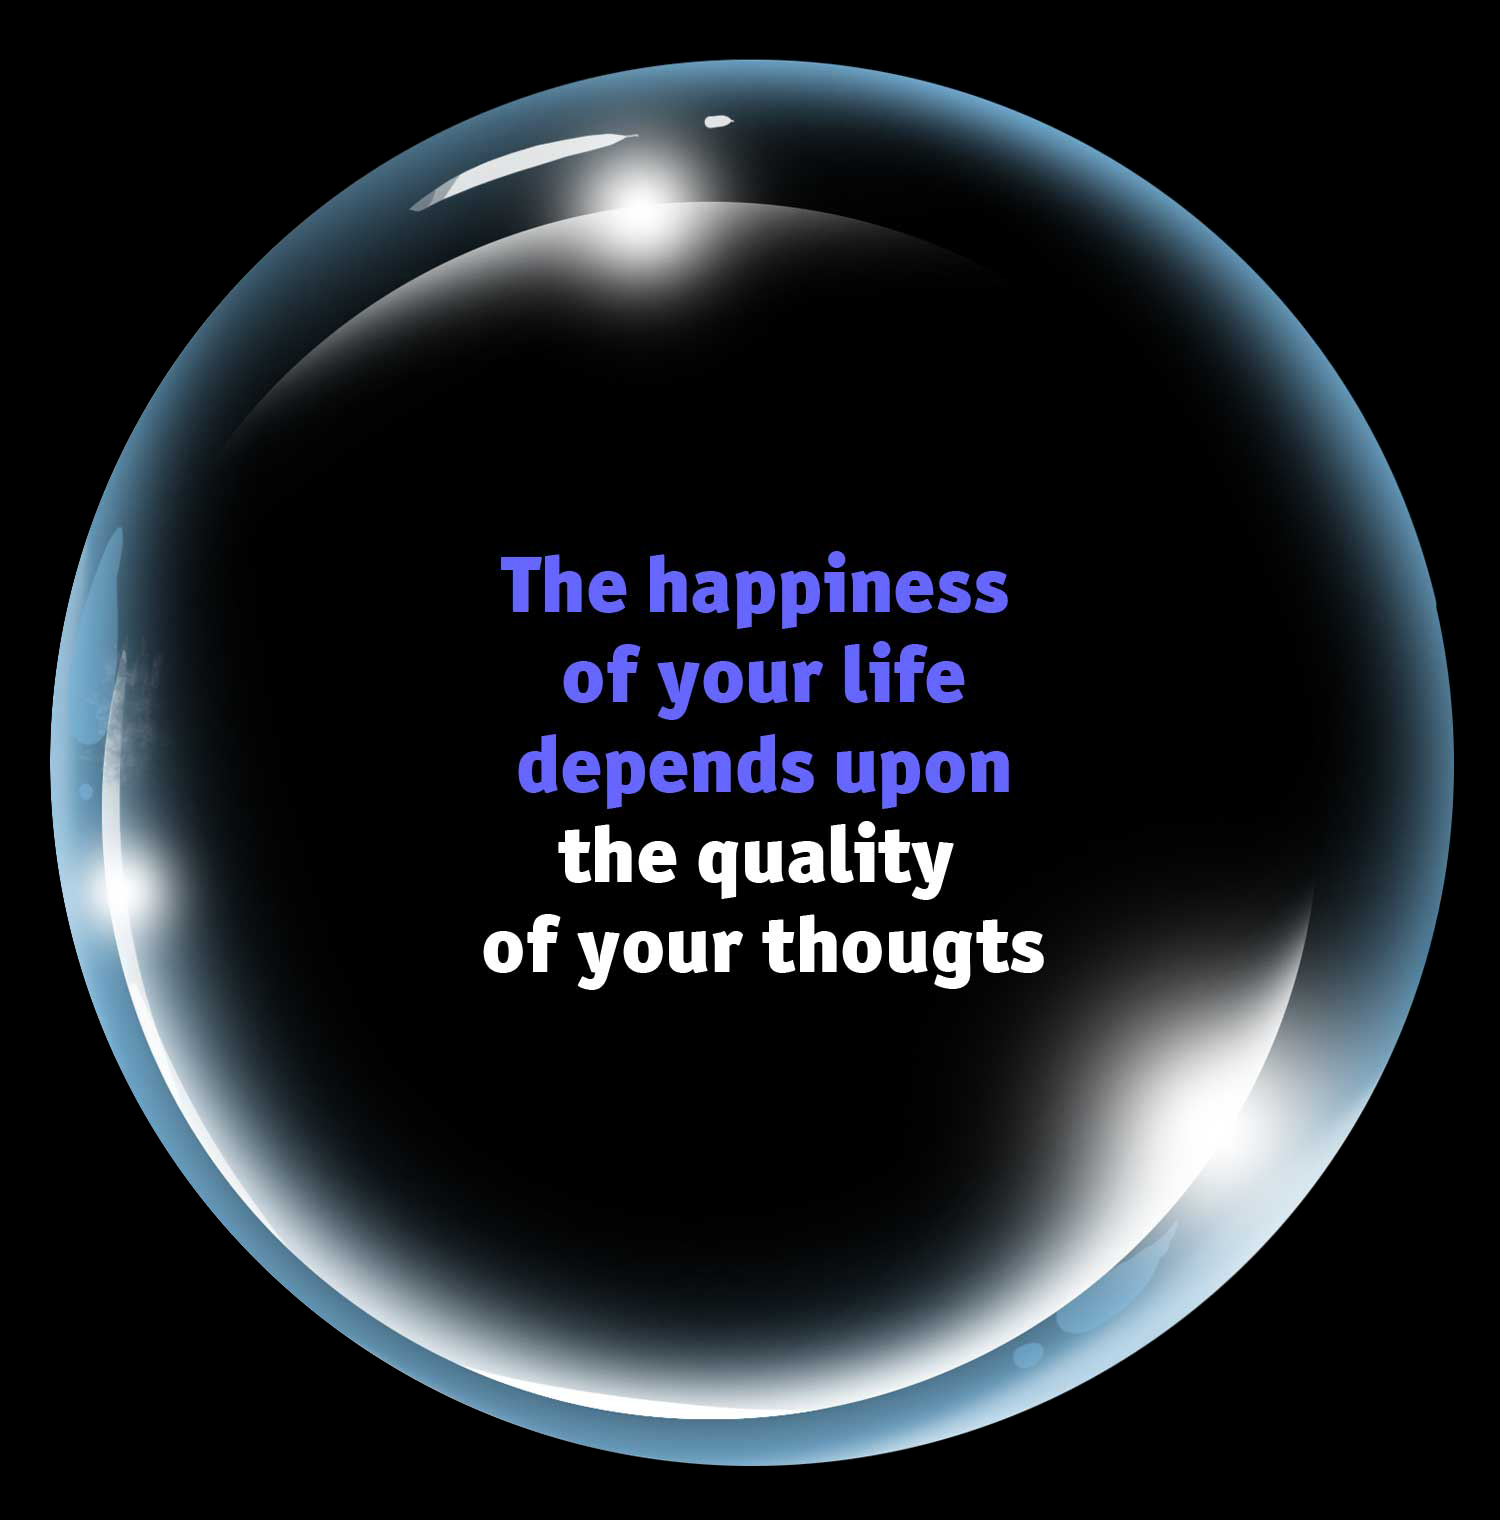 the happiness of your life depends upon the quality of your thoughts - marcus aurelius